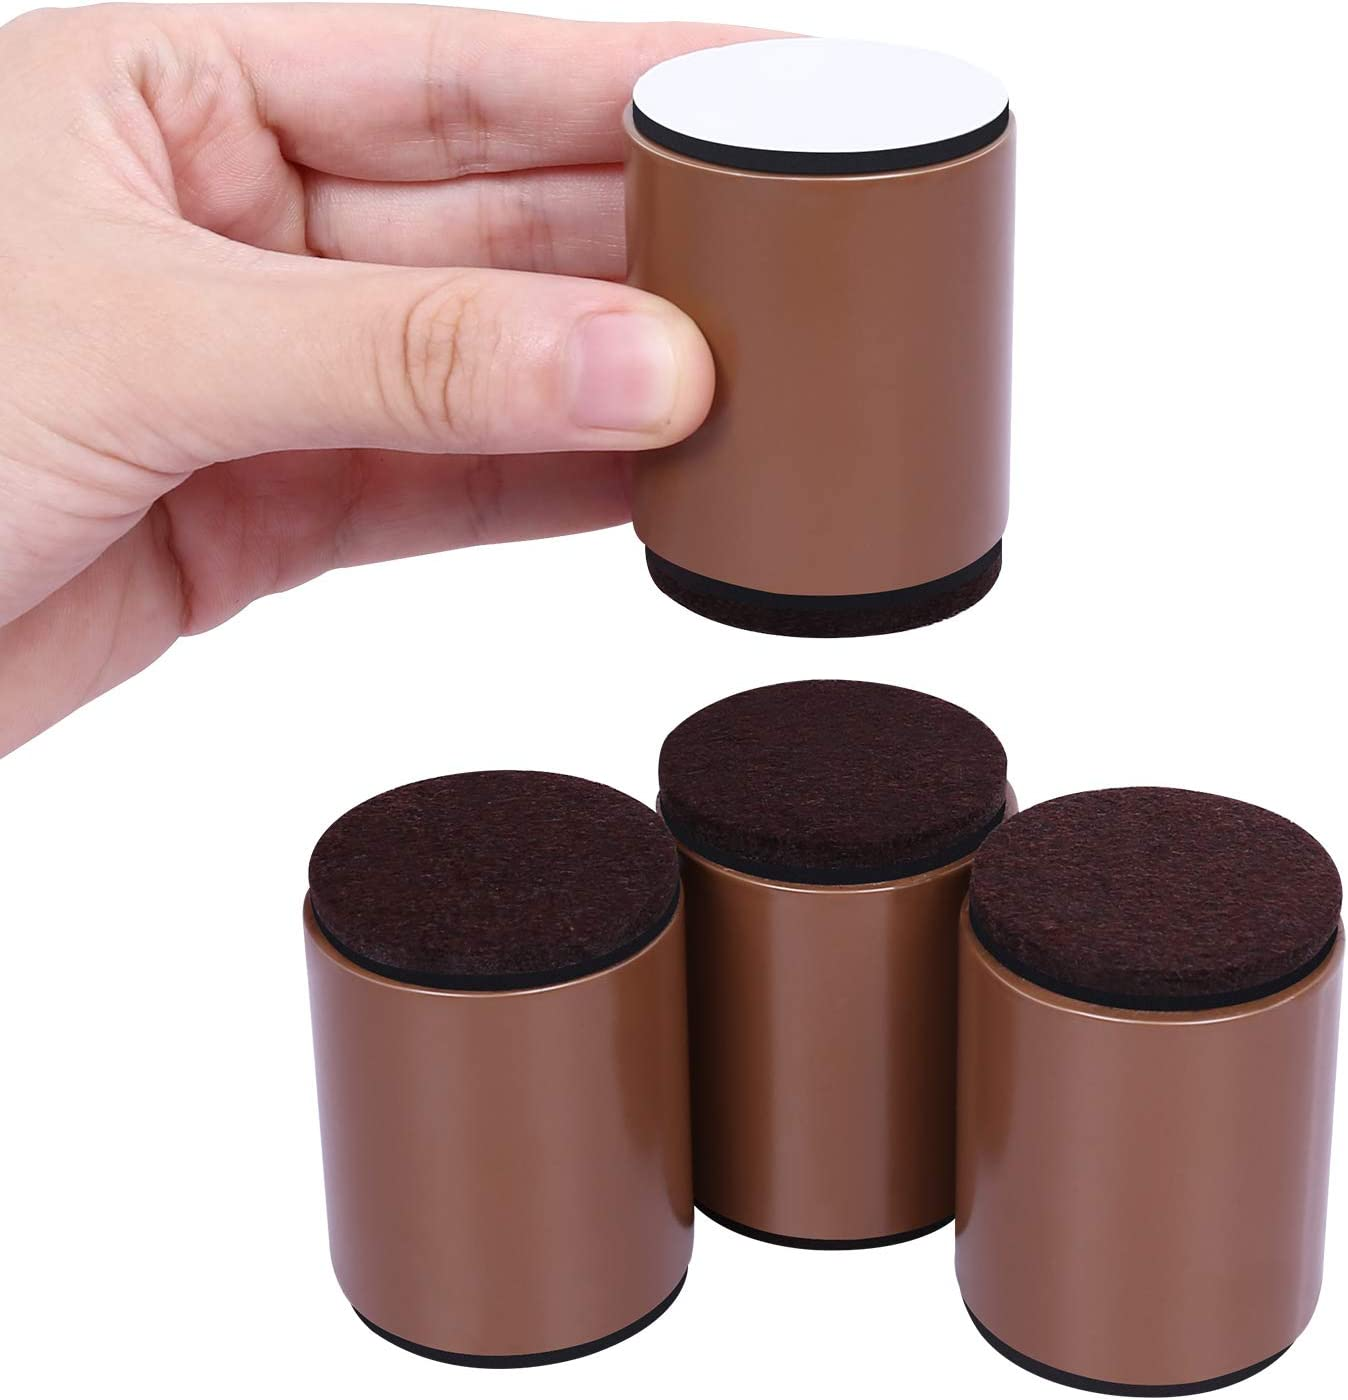 Diameter 4cm Self-Adhesive Heavy Duty Furniture Raisers Adds 5cm Height to Beds Sofas Cabinets Supports 20,000 lbs Round, Black AIRUJIA 5cm Lift Furniture Risers Carbon Steel Bed Risers